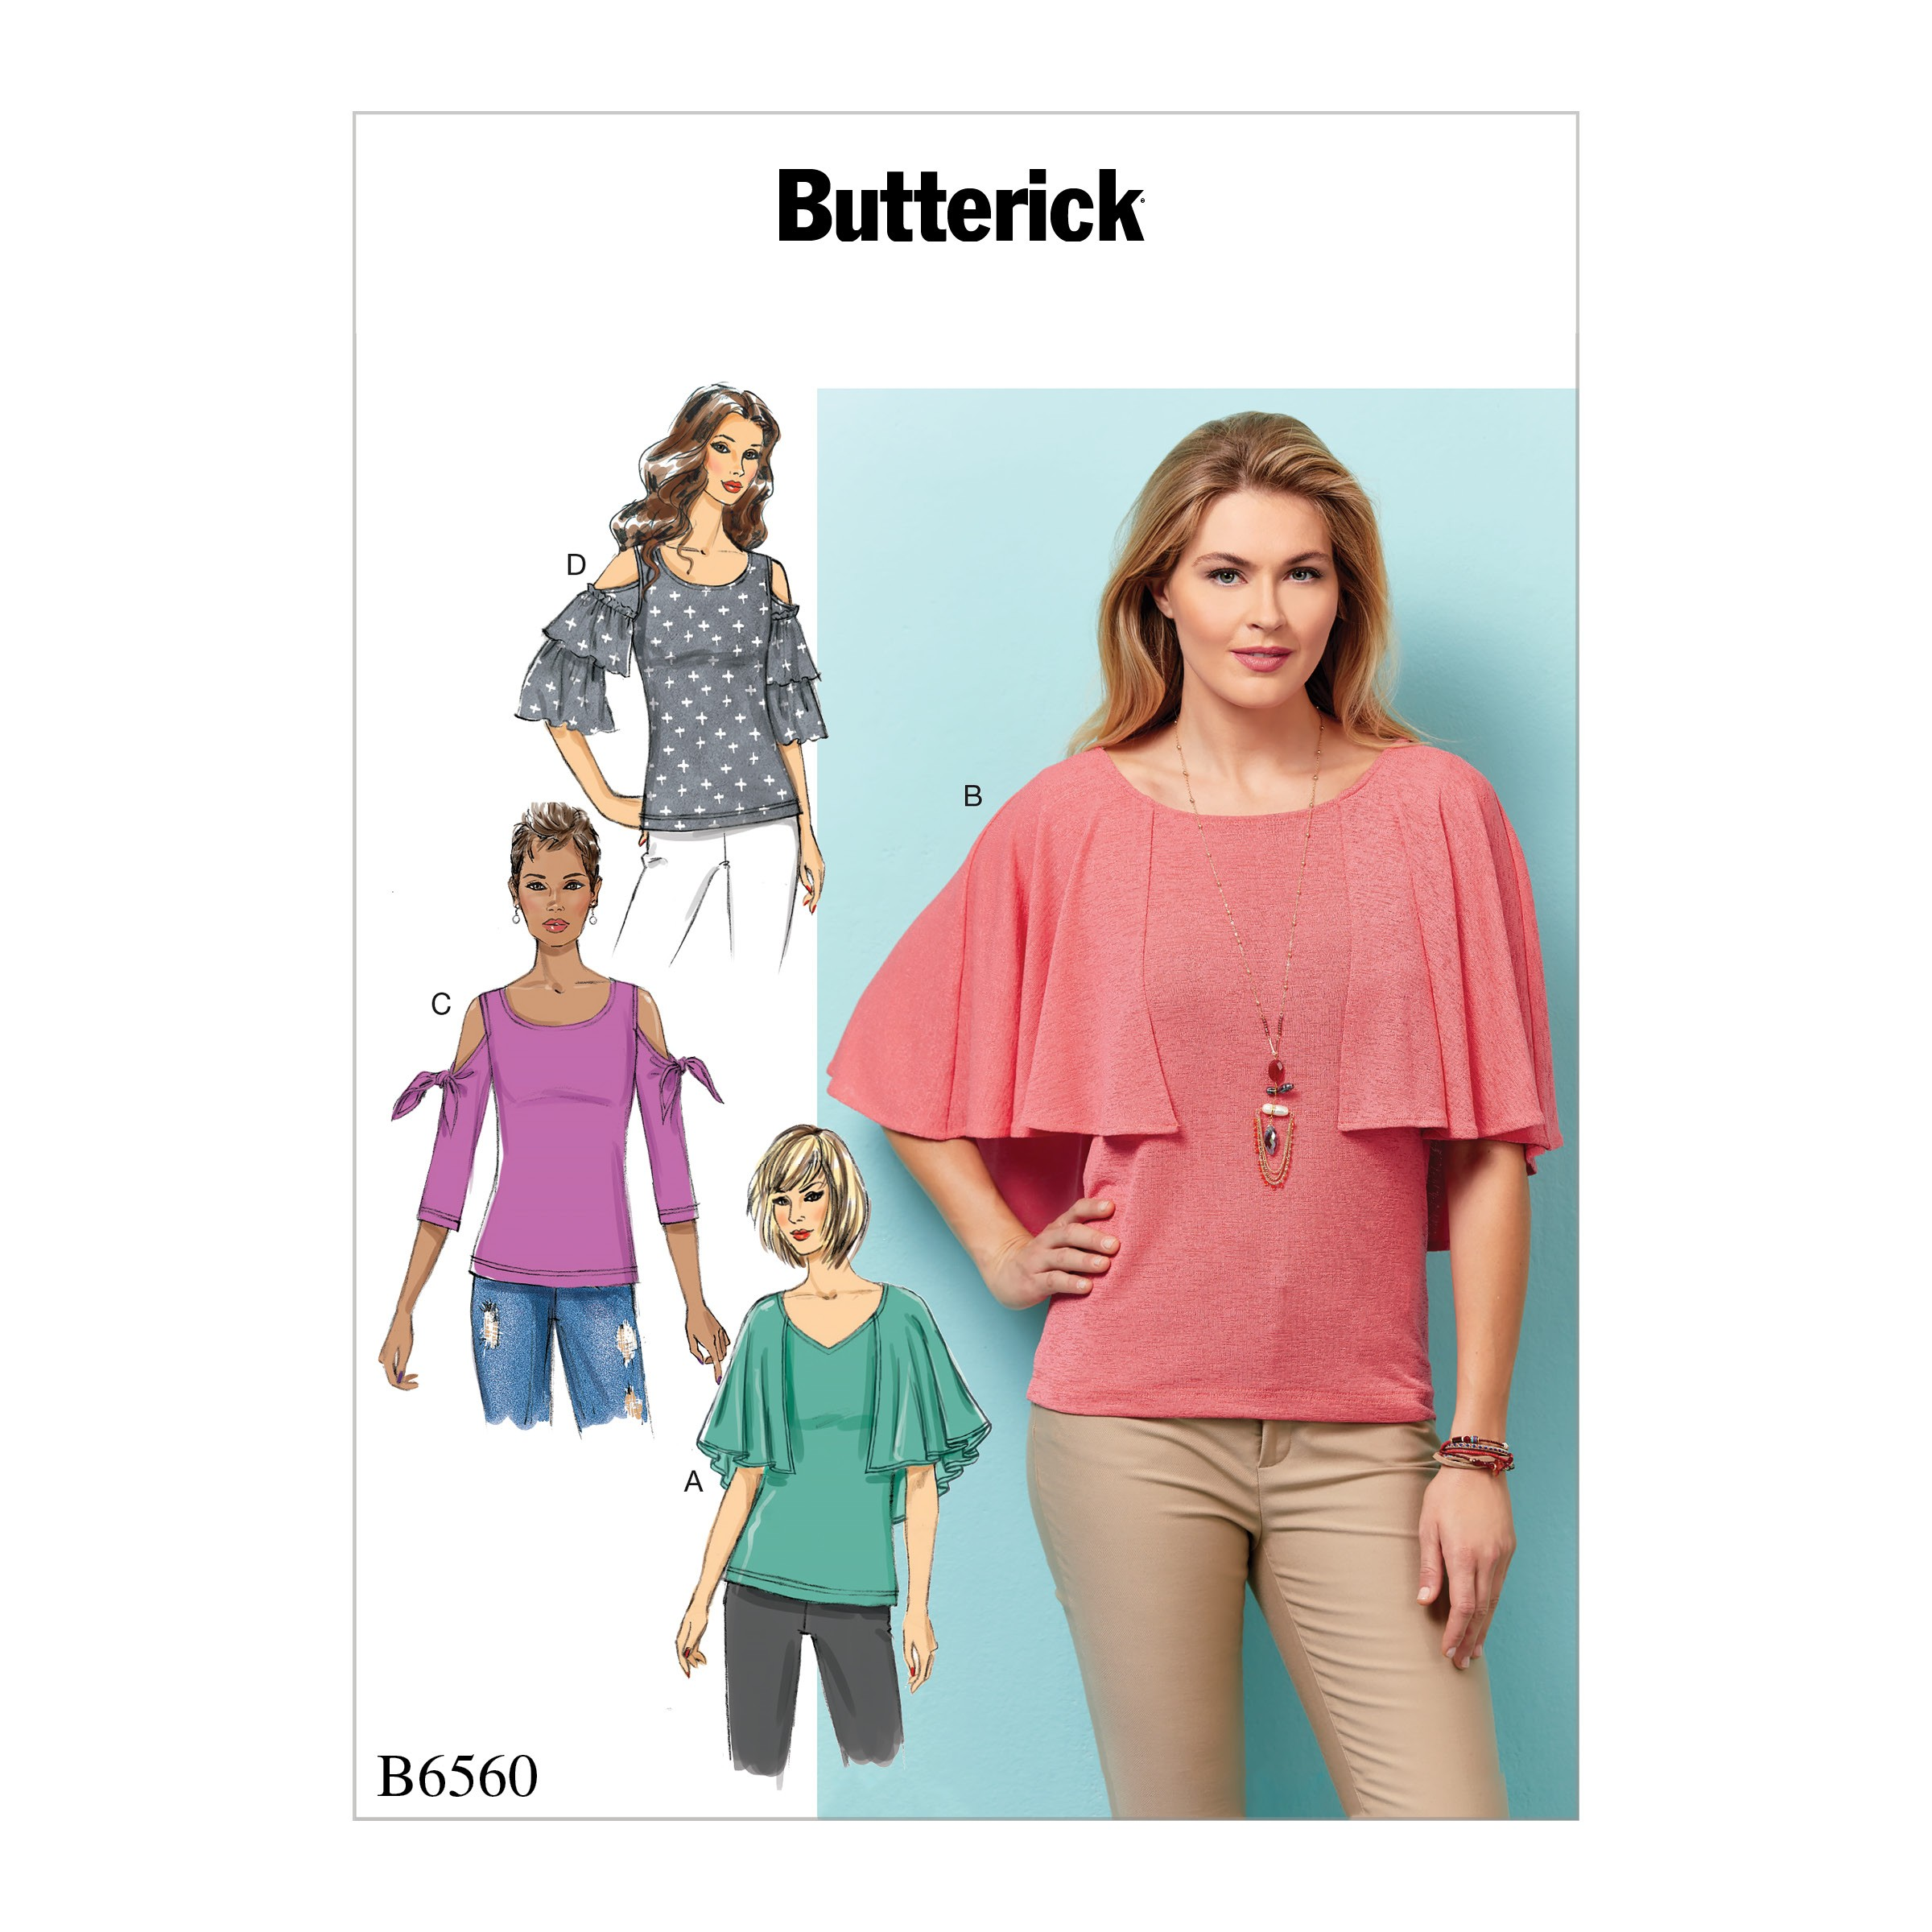 Butterick Sewing Pattern 6560 Misses' Flared or Knotted Arm Loose Fitting Top